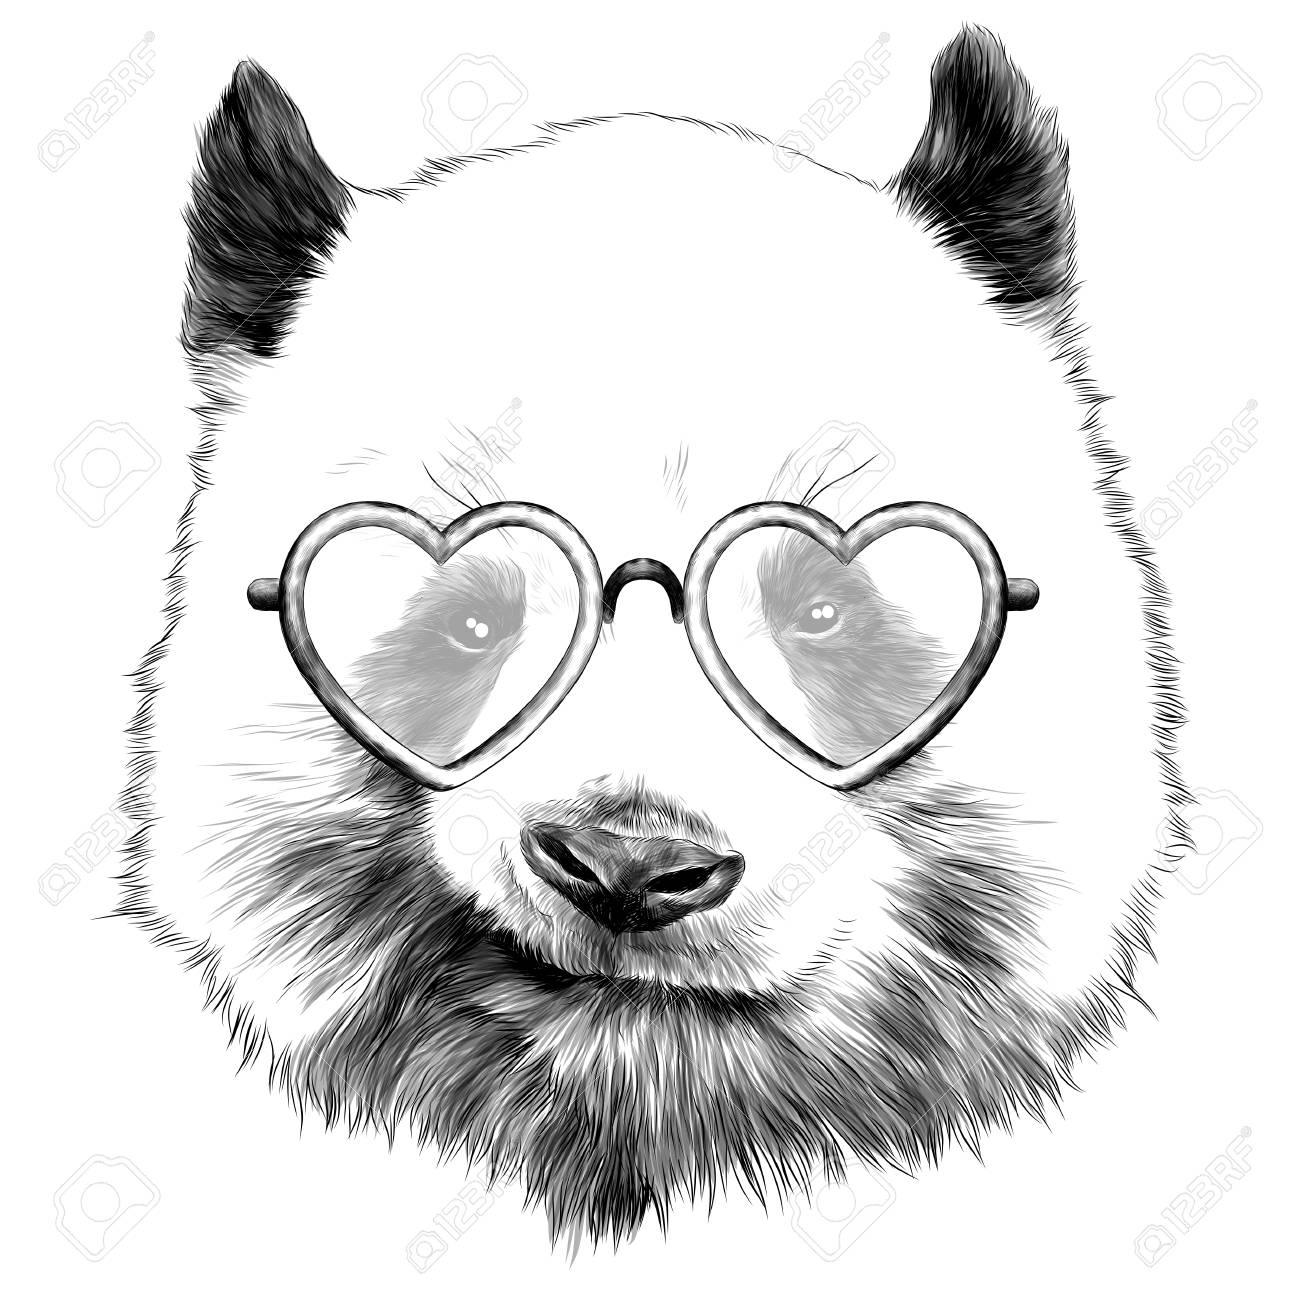 720ceabe7b9 Cunning panda head with glasses in heart shape sketch graphics of a black  and white drawing